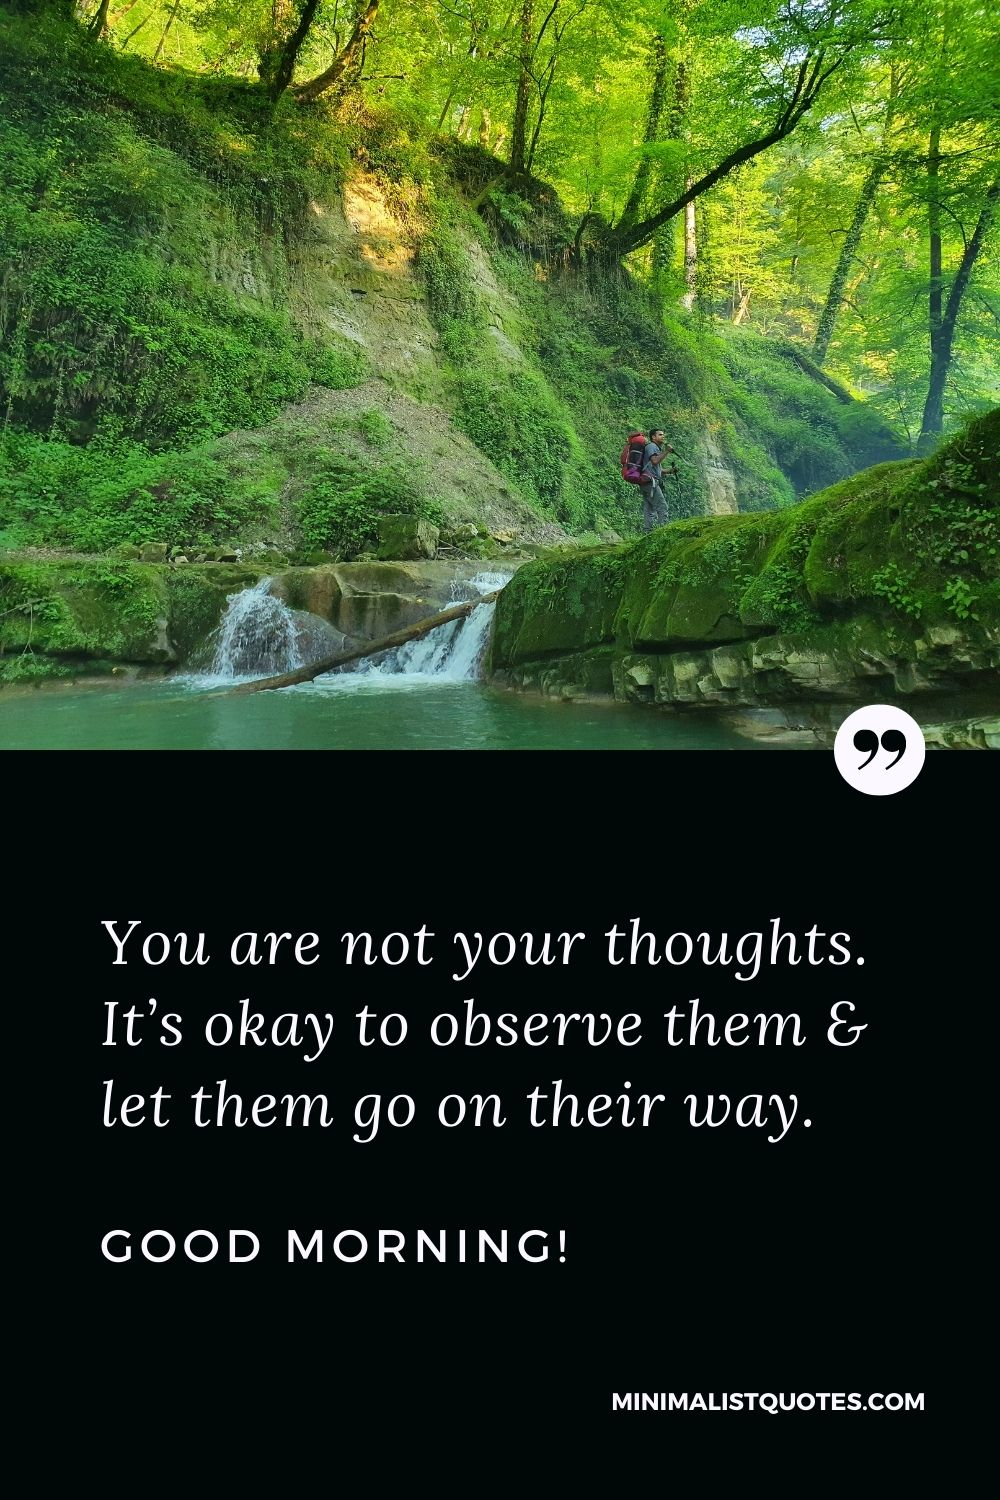 Let Go Morning Quote & Message: You are not your thoughts. It's okay to observe them & let them go on their way. Good Morning!